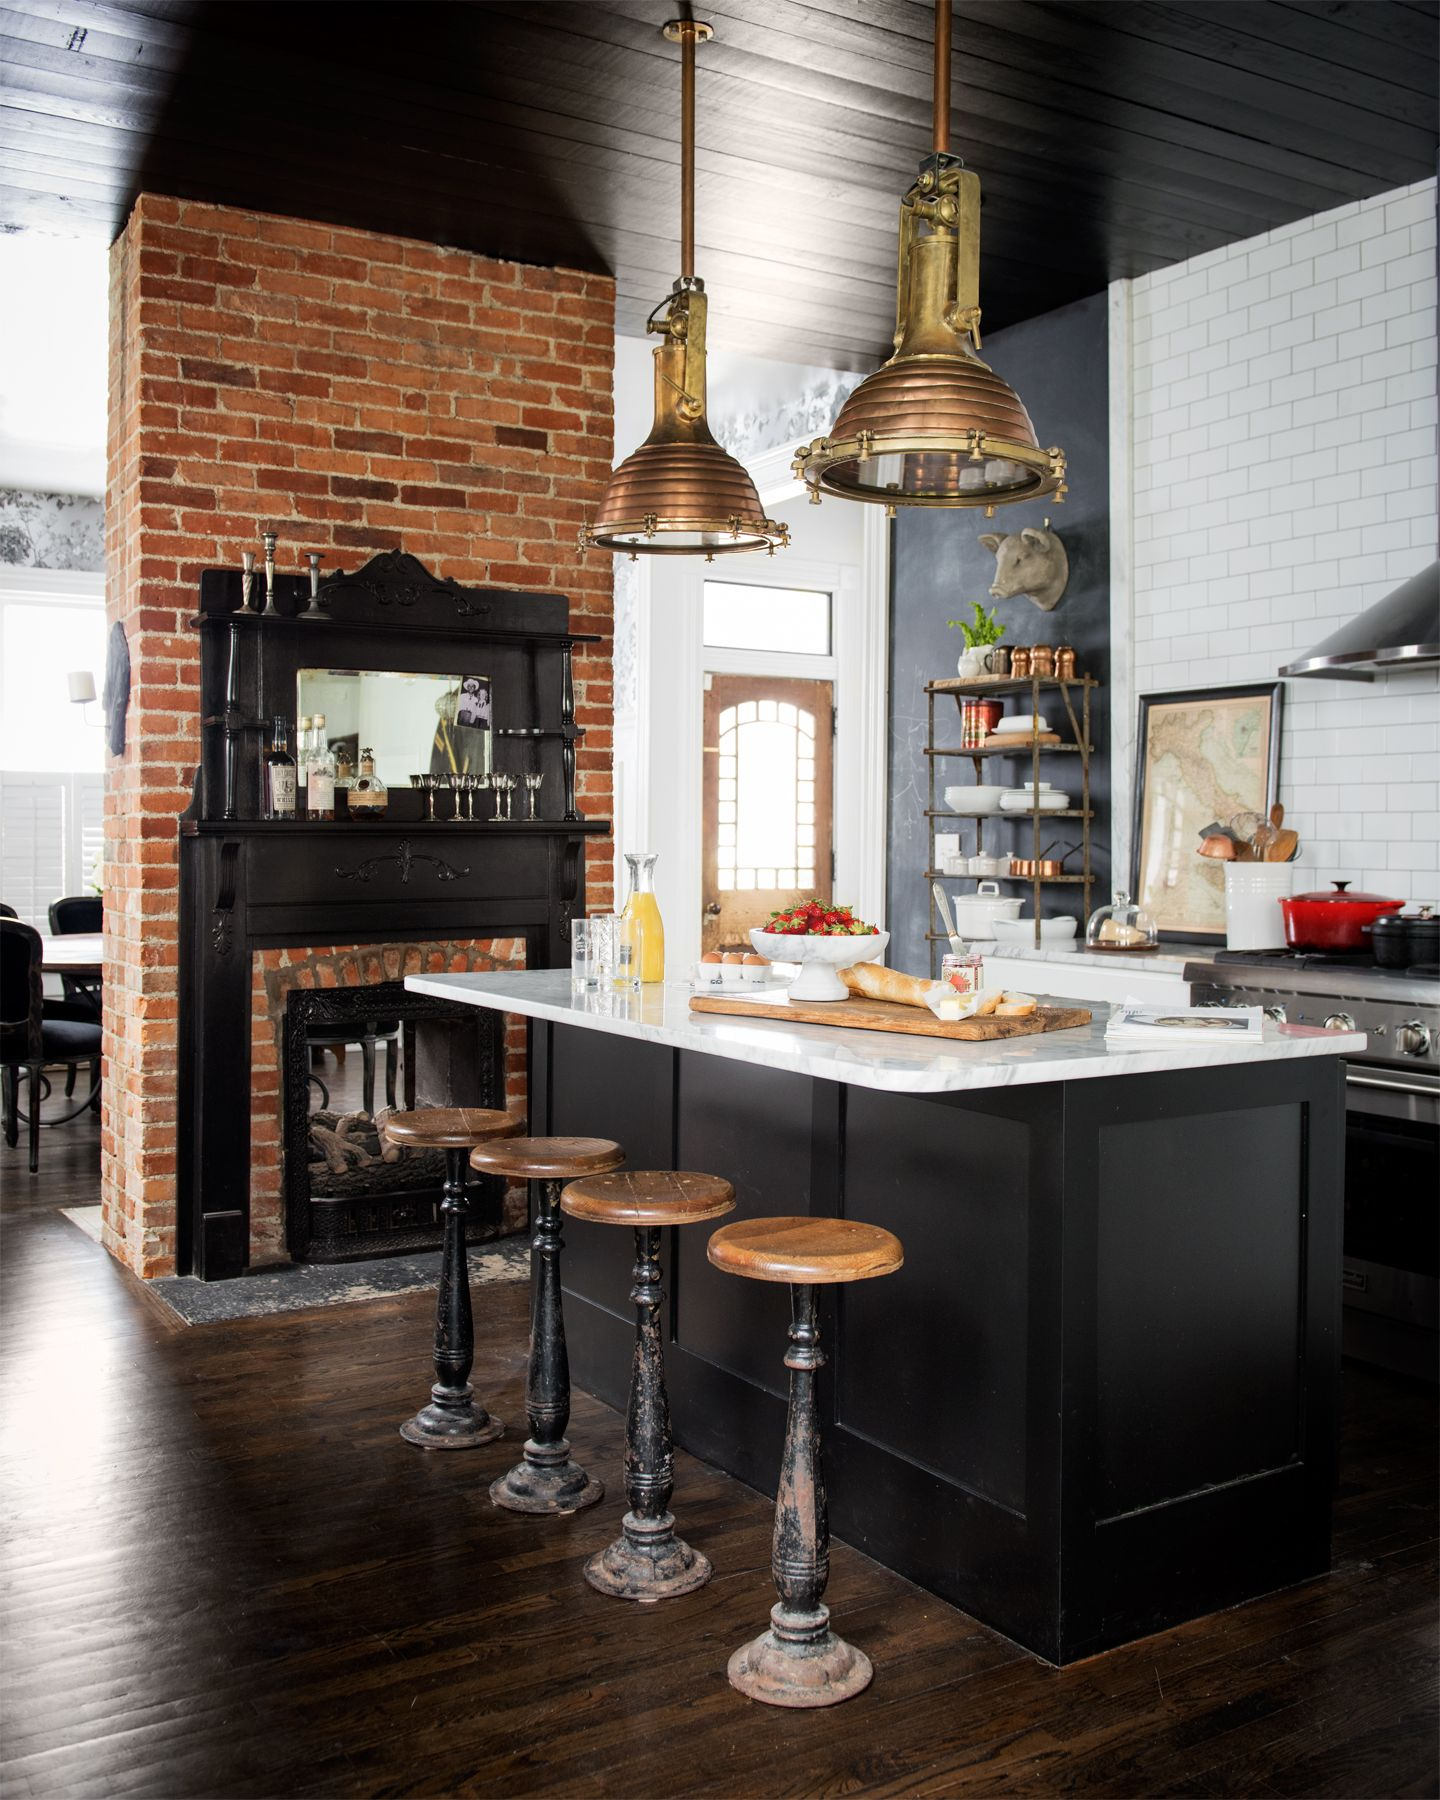 A Pine Ceiling Gives The Kitchen A Country Vibe, While Its Inky Black Paint  Job